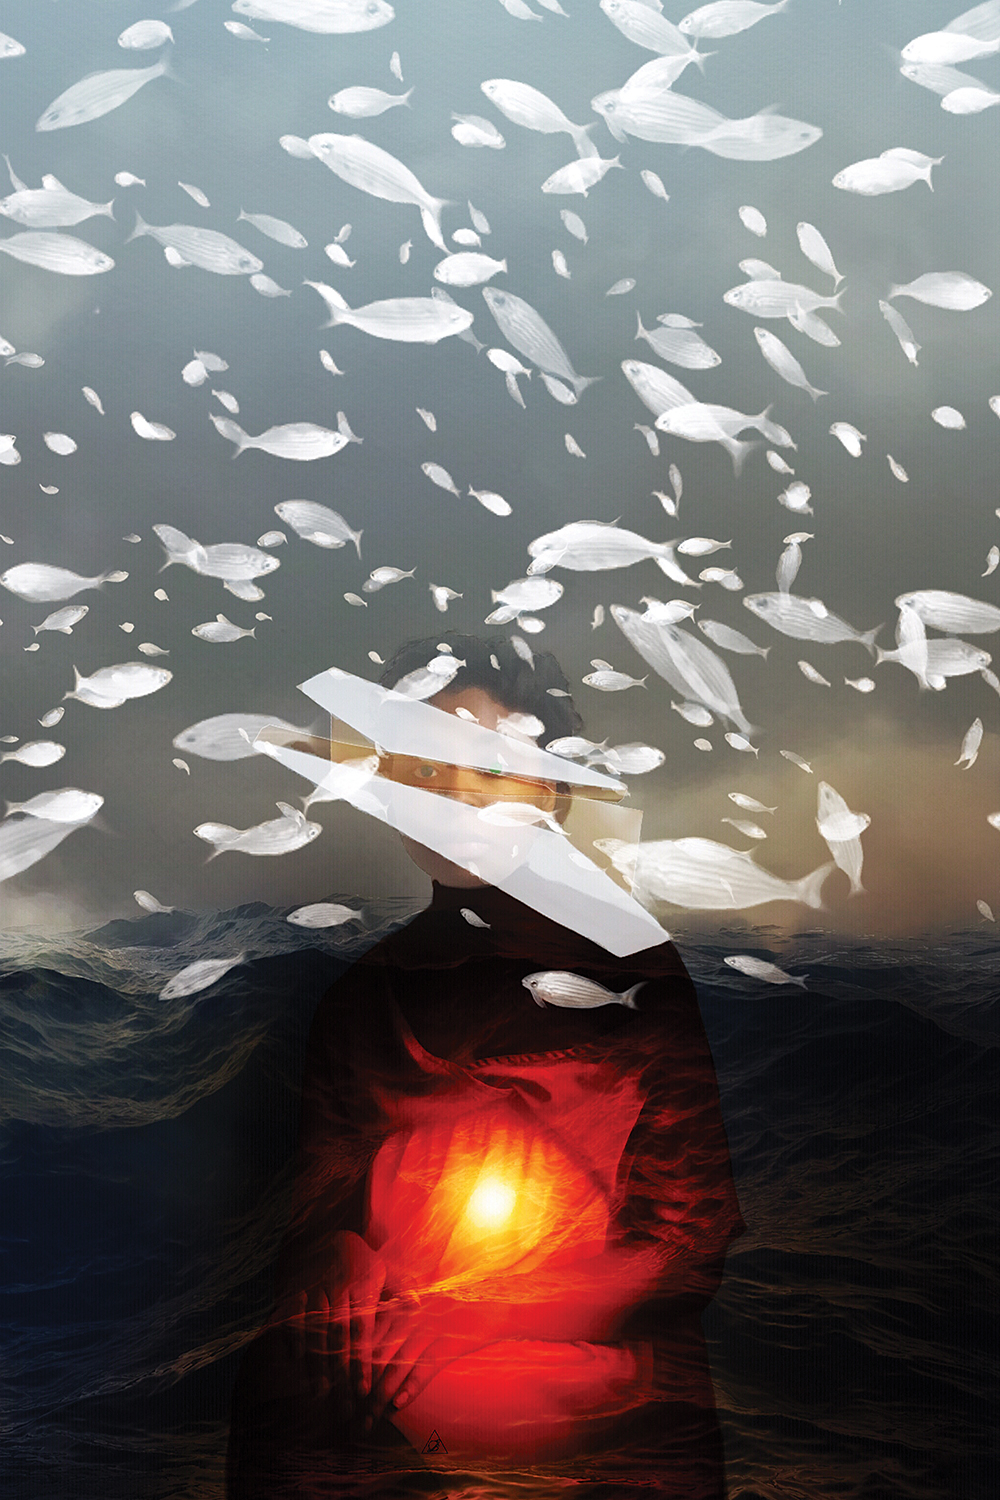 Untitled II by Deandra Lee shows a woman with a red light shining on her body and white fish floating above her with mountains in the background